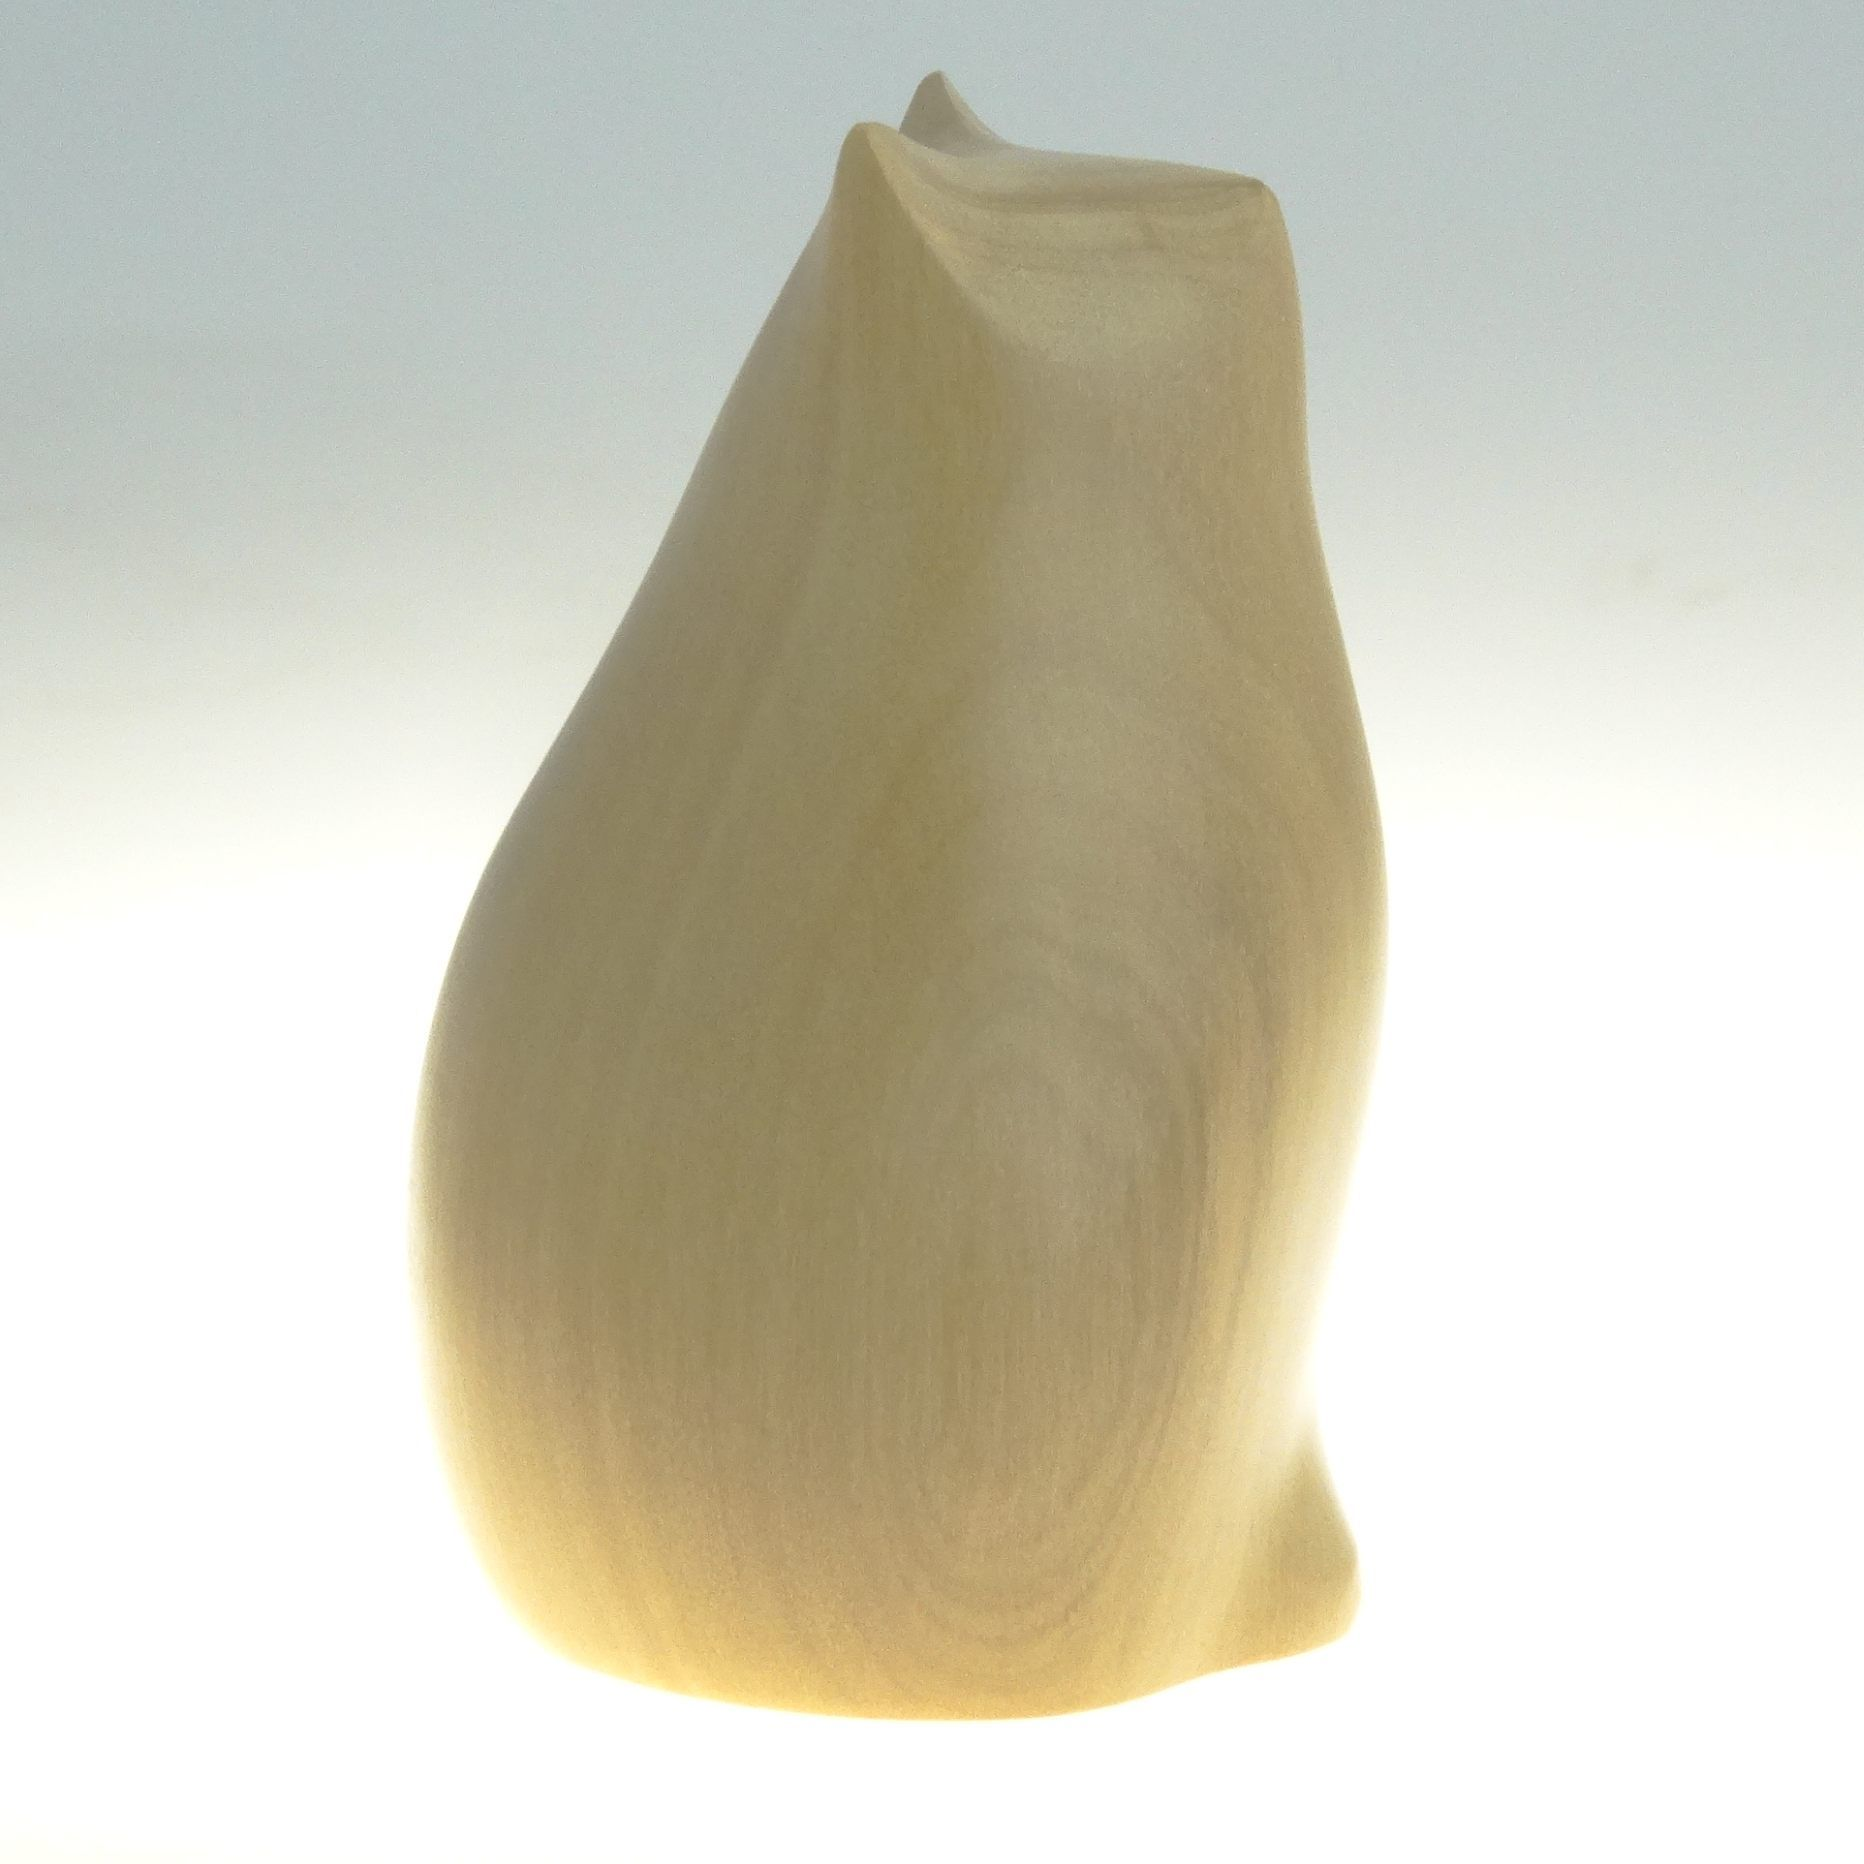 Fat cat by perry lancaster pyramid gallery minimal sculpture